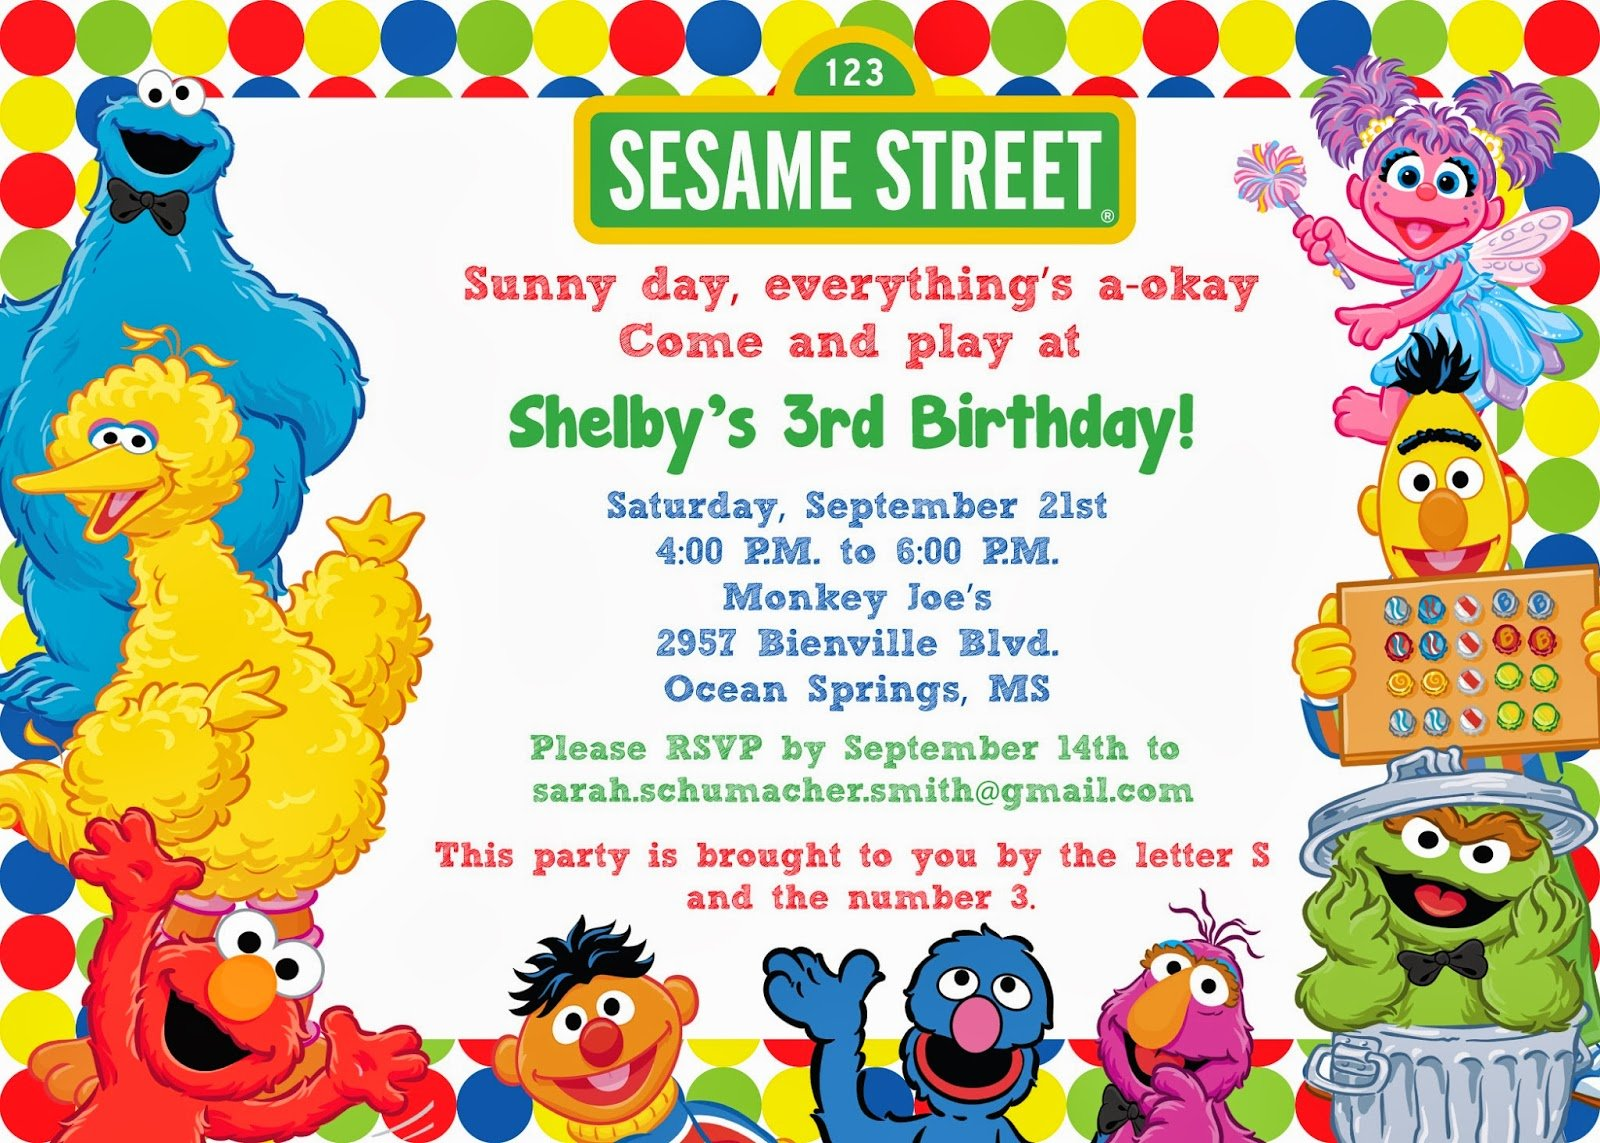 Dinner Party Invitation Quotes furthermore Red Carpet Poster further Spiderman Birthday Invitations Cards Wording Kids also Movie Night as well Free Sesame Street Birthday Invitations. on oscar invitations free printable